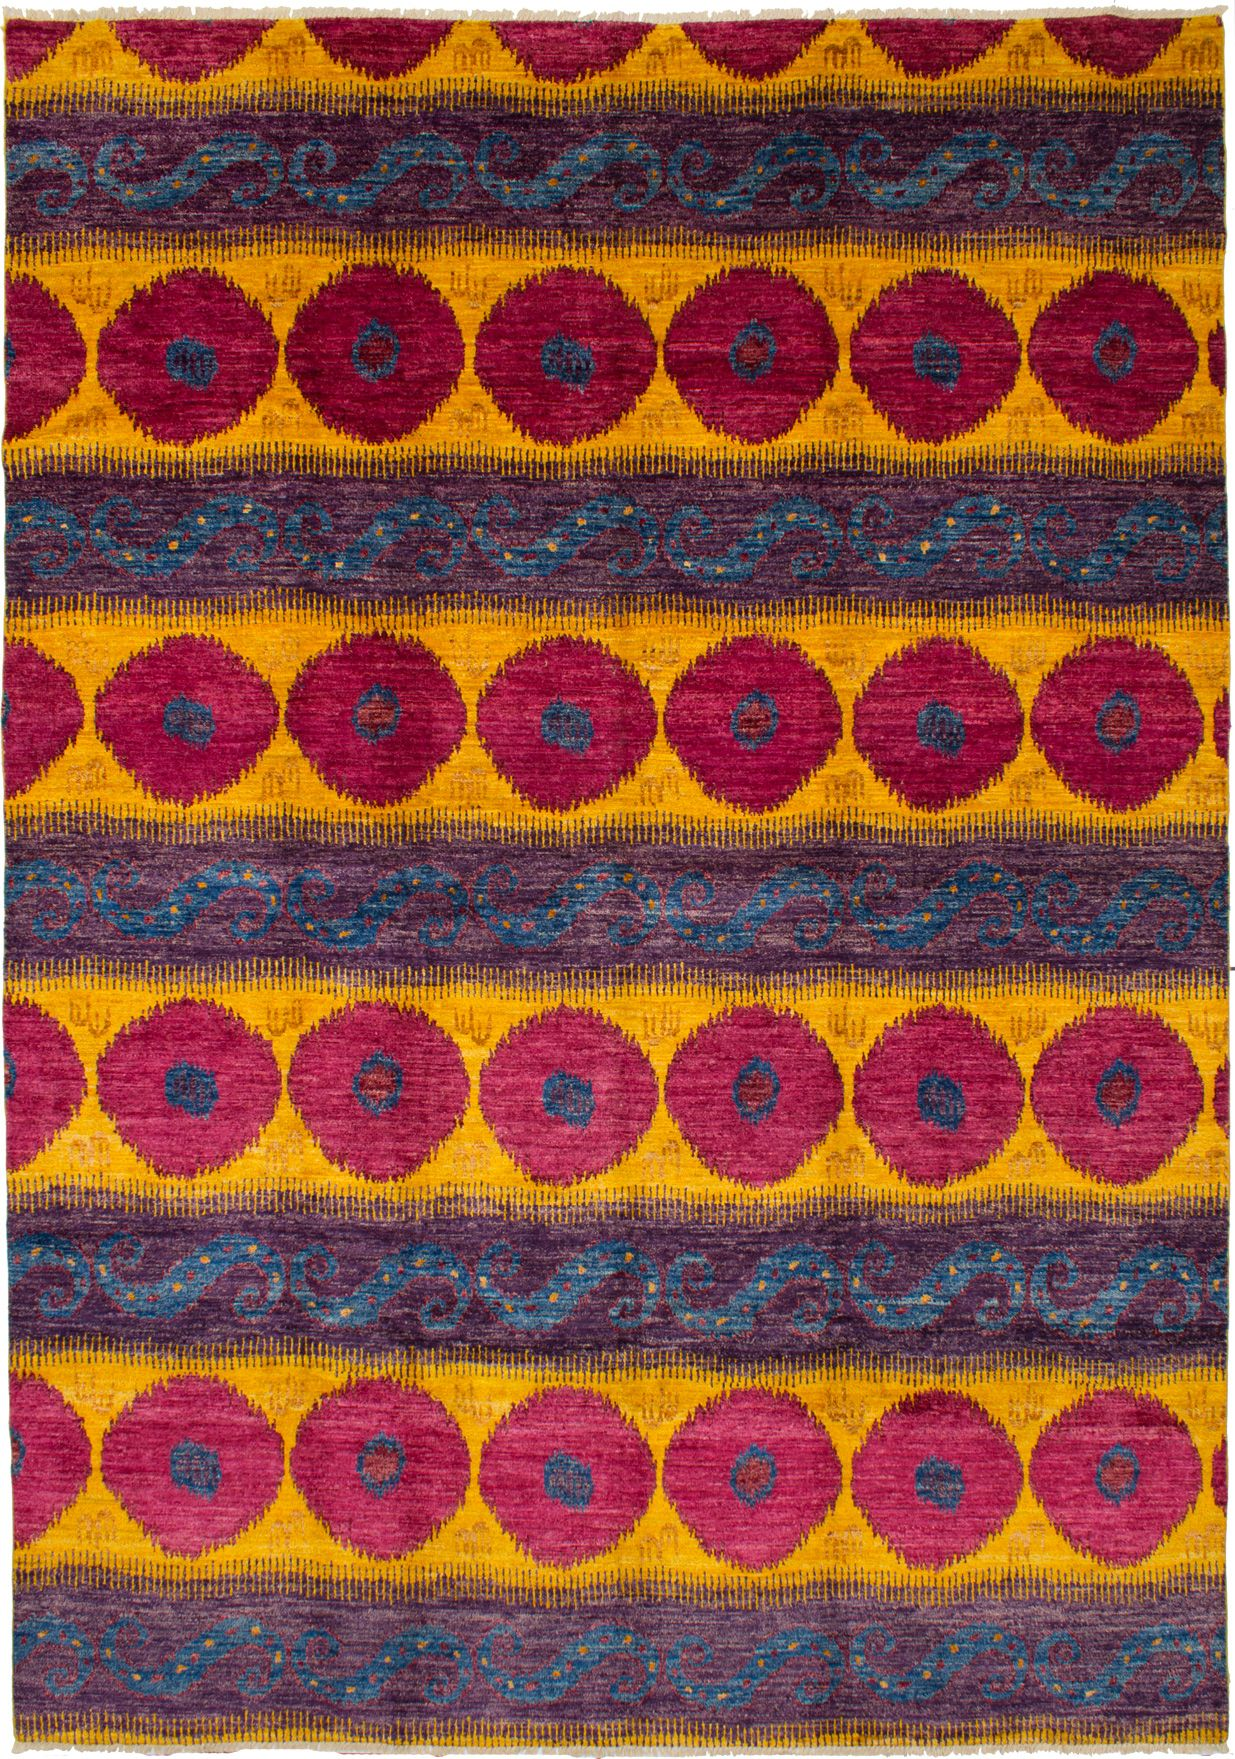 Hand-knotted Shalimar Red, Yellow Wool Rug 9'10in x 14'2in at RugsBySize.com